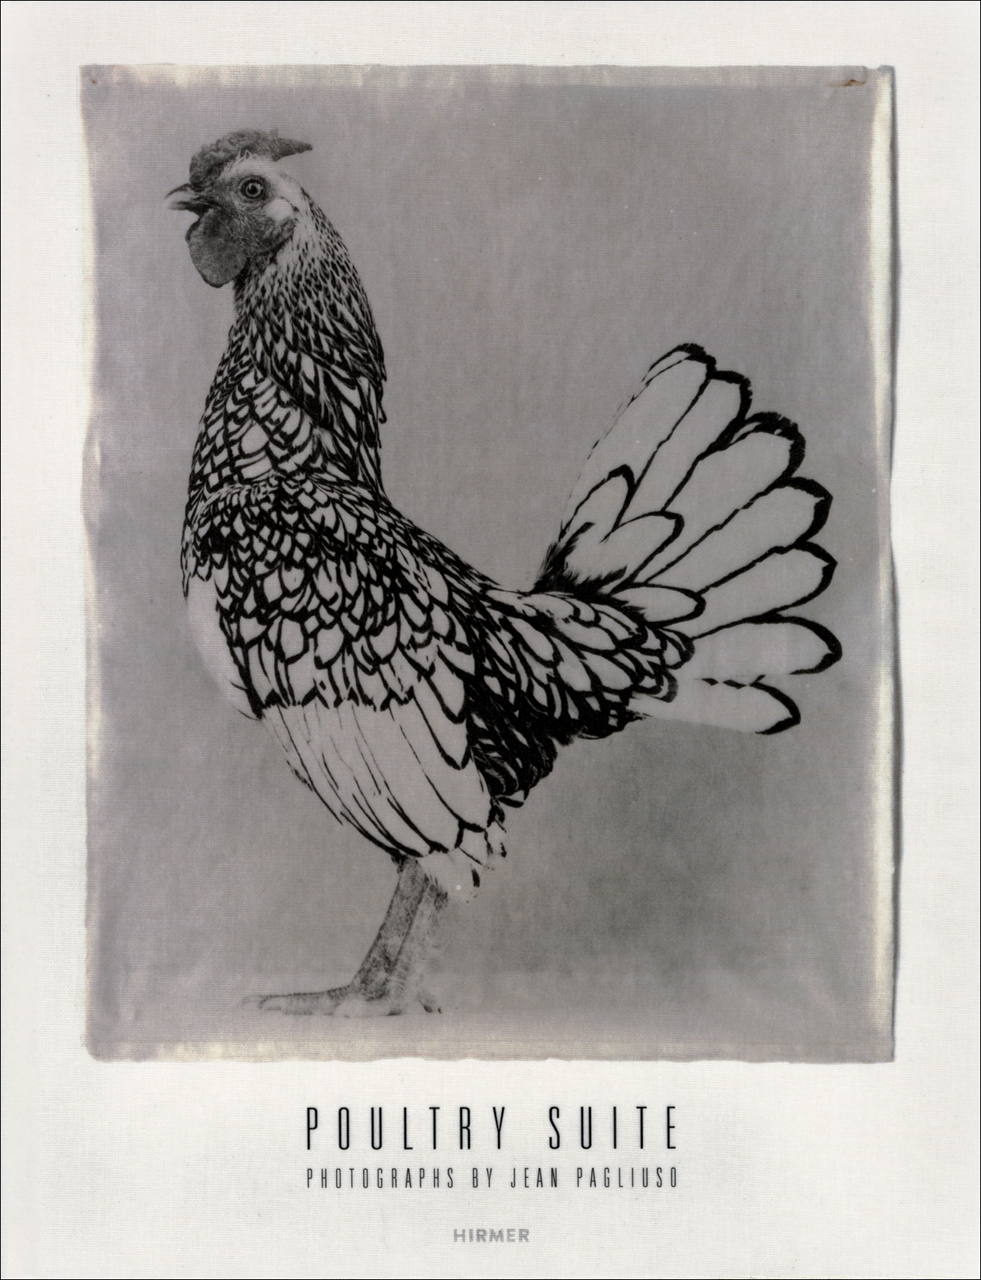 Poultry Suite: Photographs by Jean Pagliuso